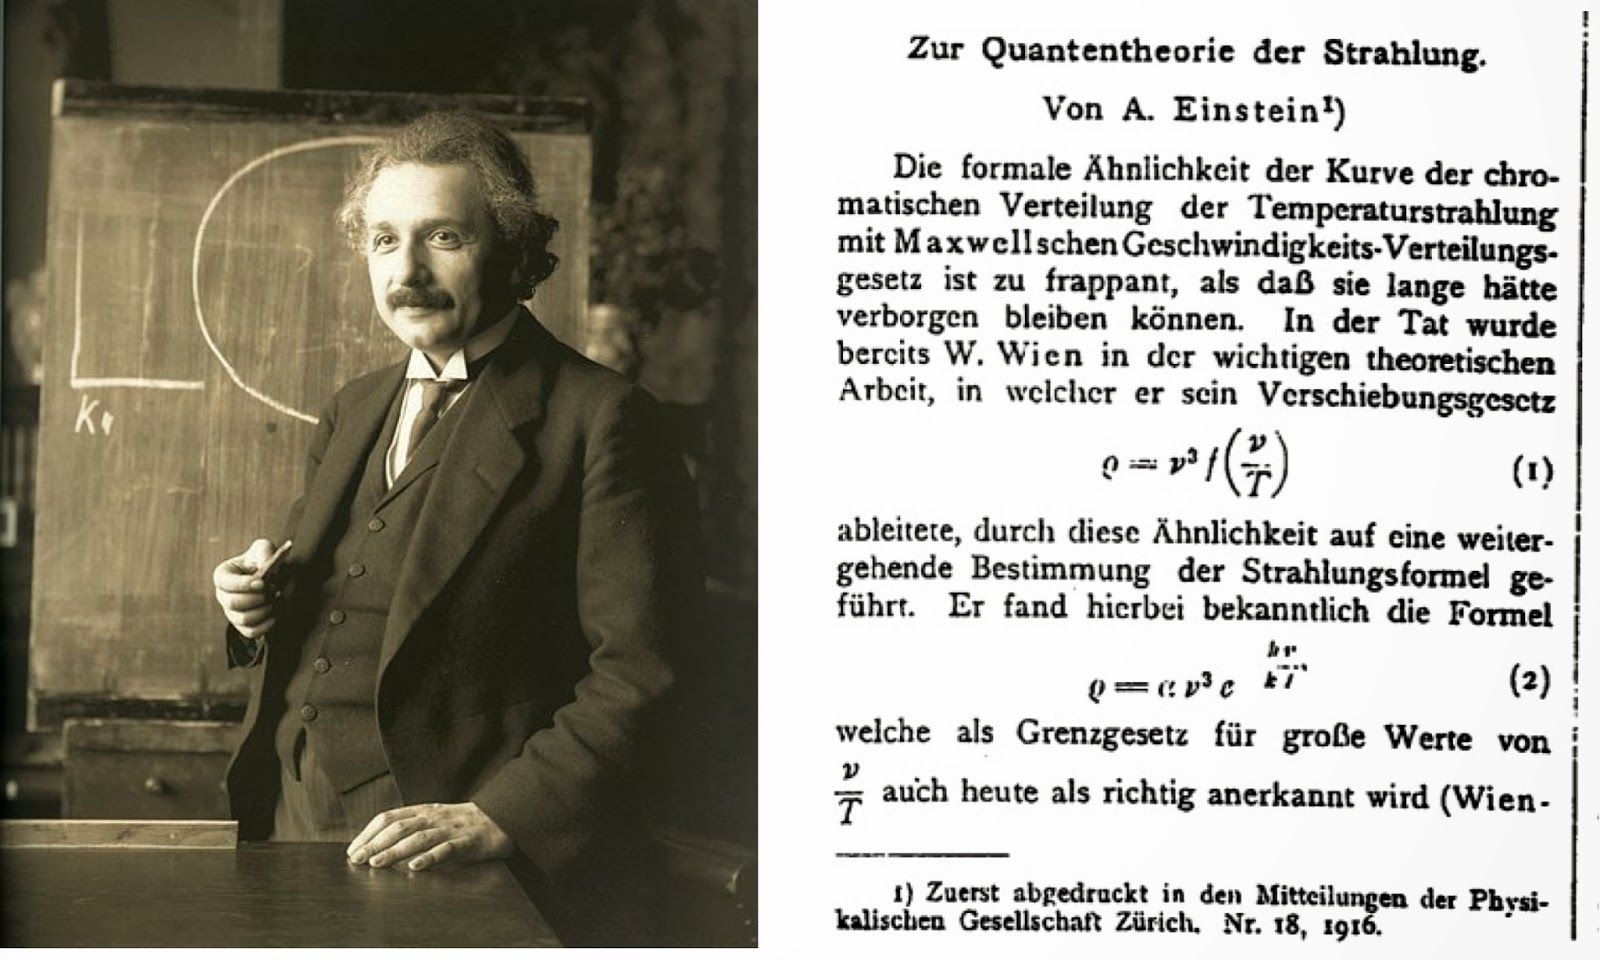 einstein essay Einstein stated that his participation consisted of a single act - signing the 1939 letter to president roosevelt i did not see any other way out, although i always was a convinced pacifist the essay appeared in a special edition of kaizo published in 1952.